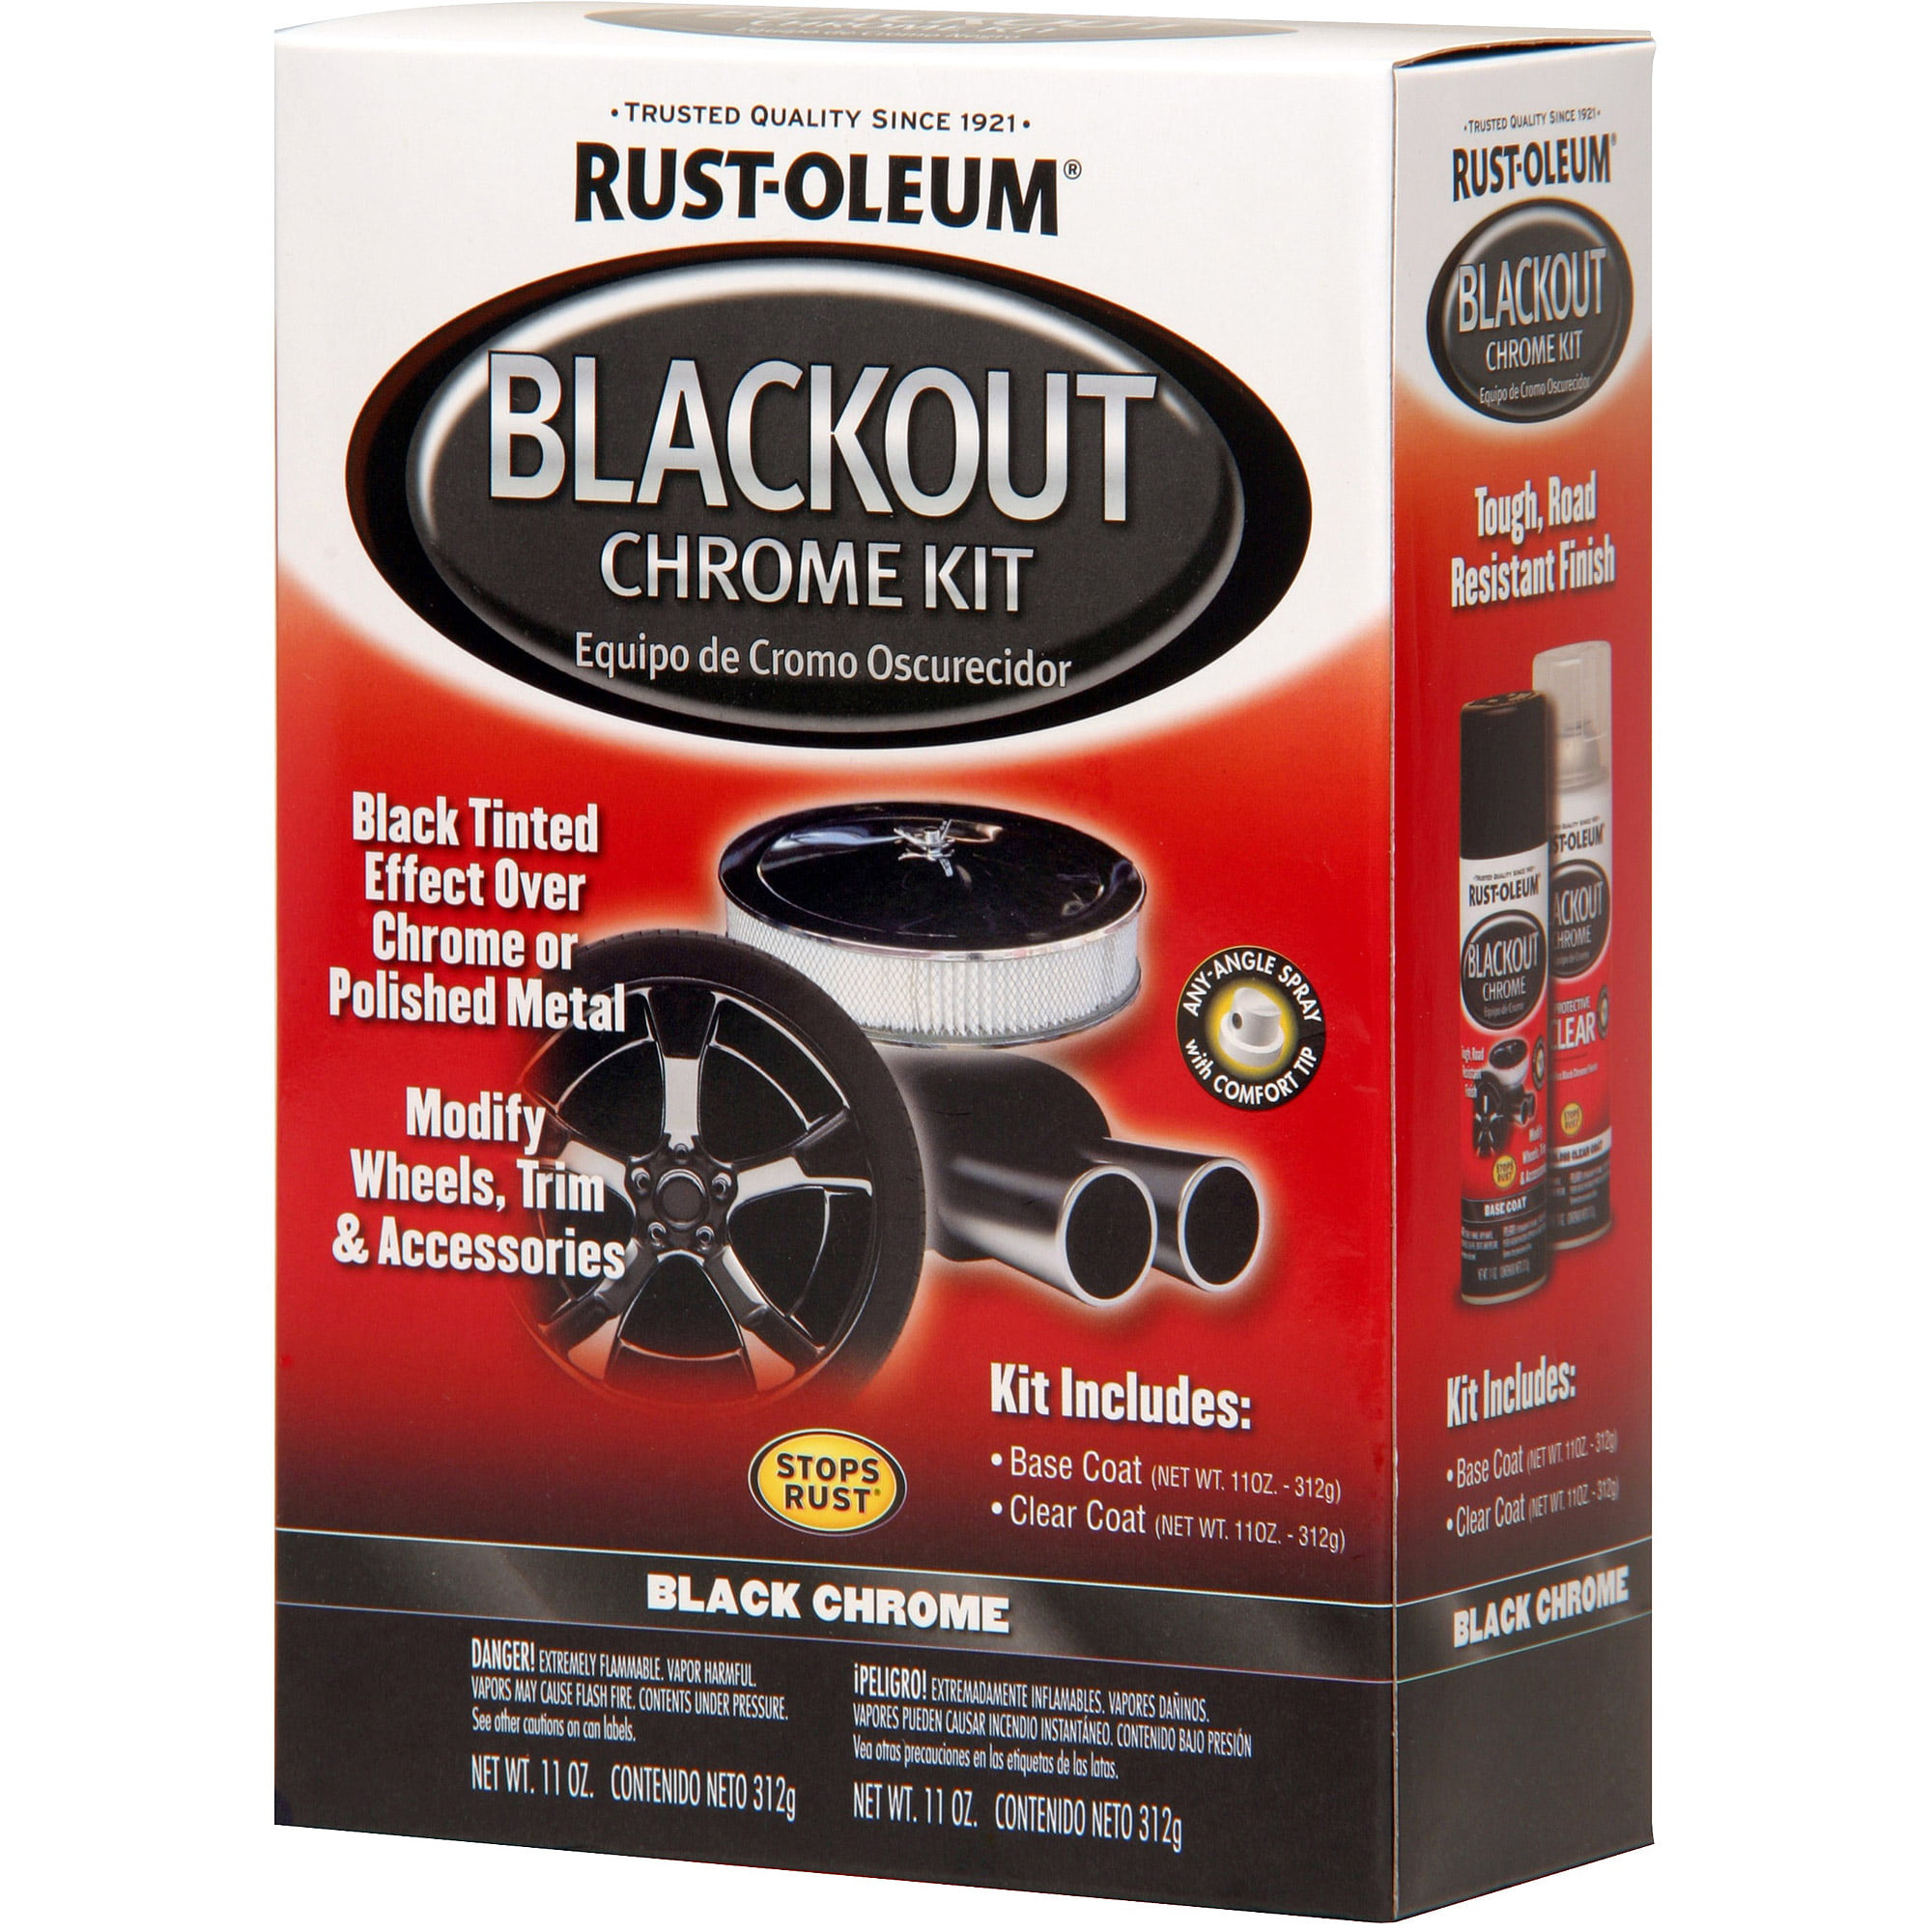 Rust Oleum Blackout Chrome Kit Walmart